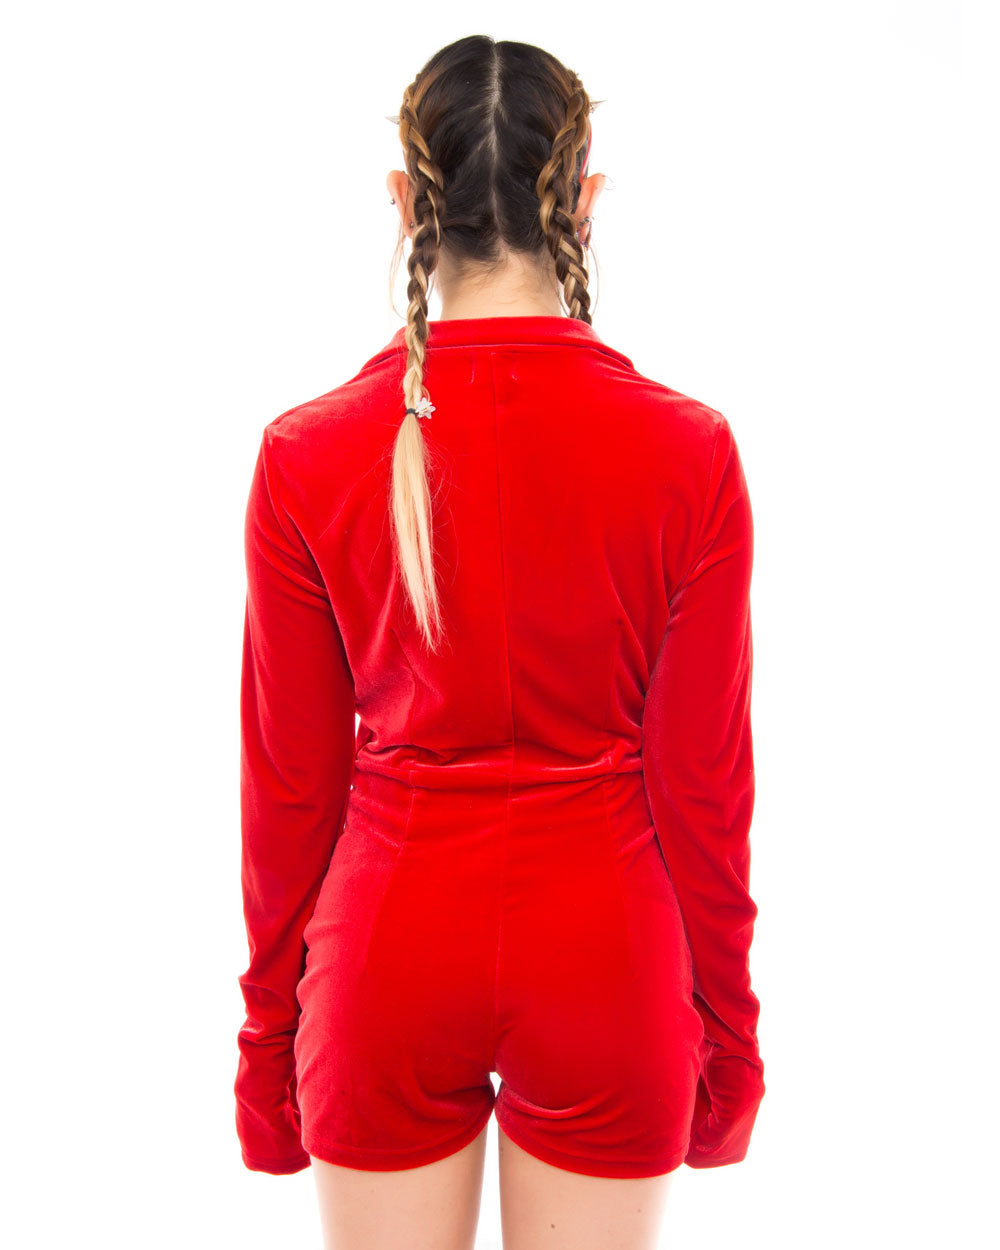 MAD RED VELVET BODYSUIT